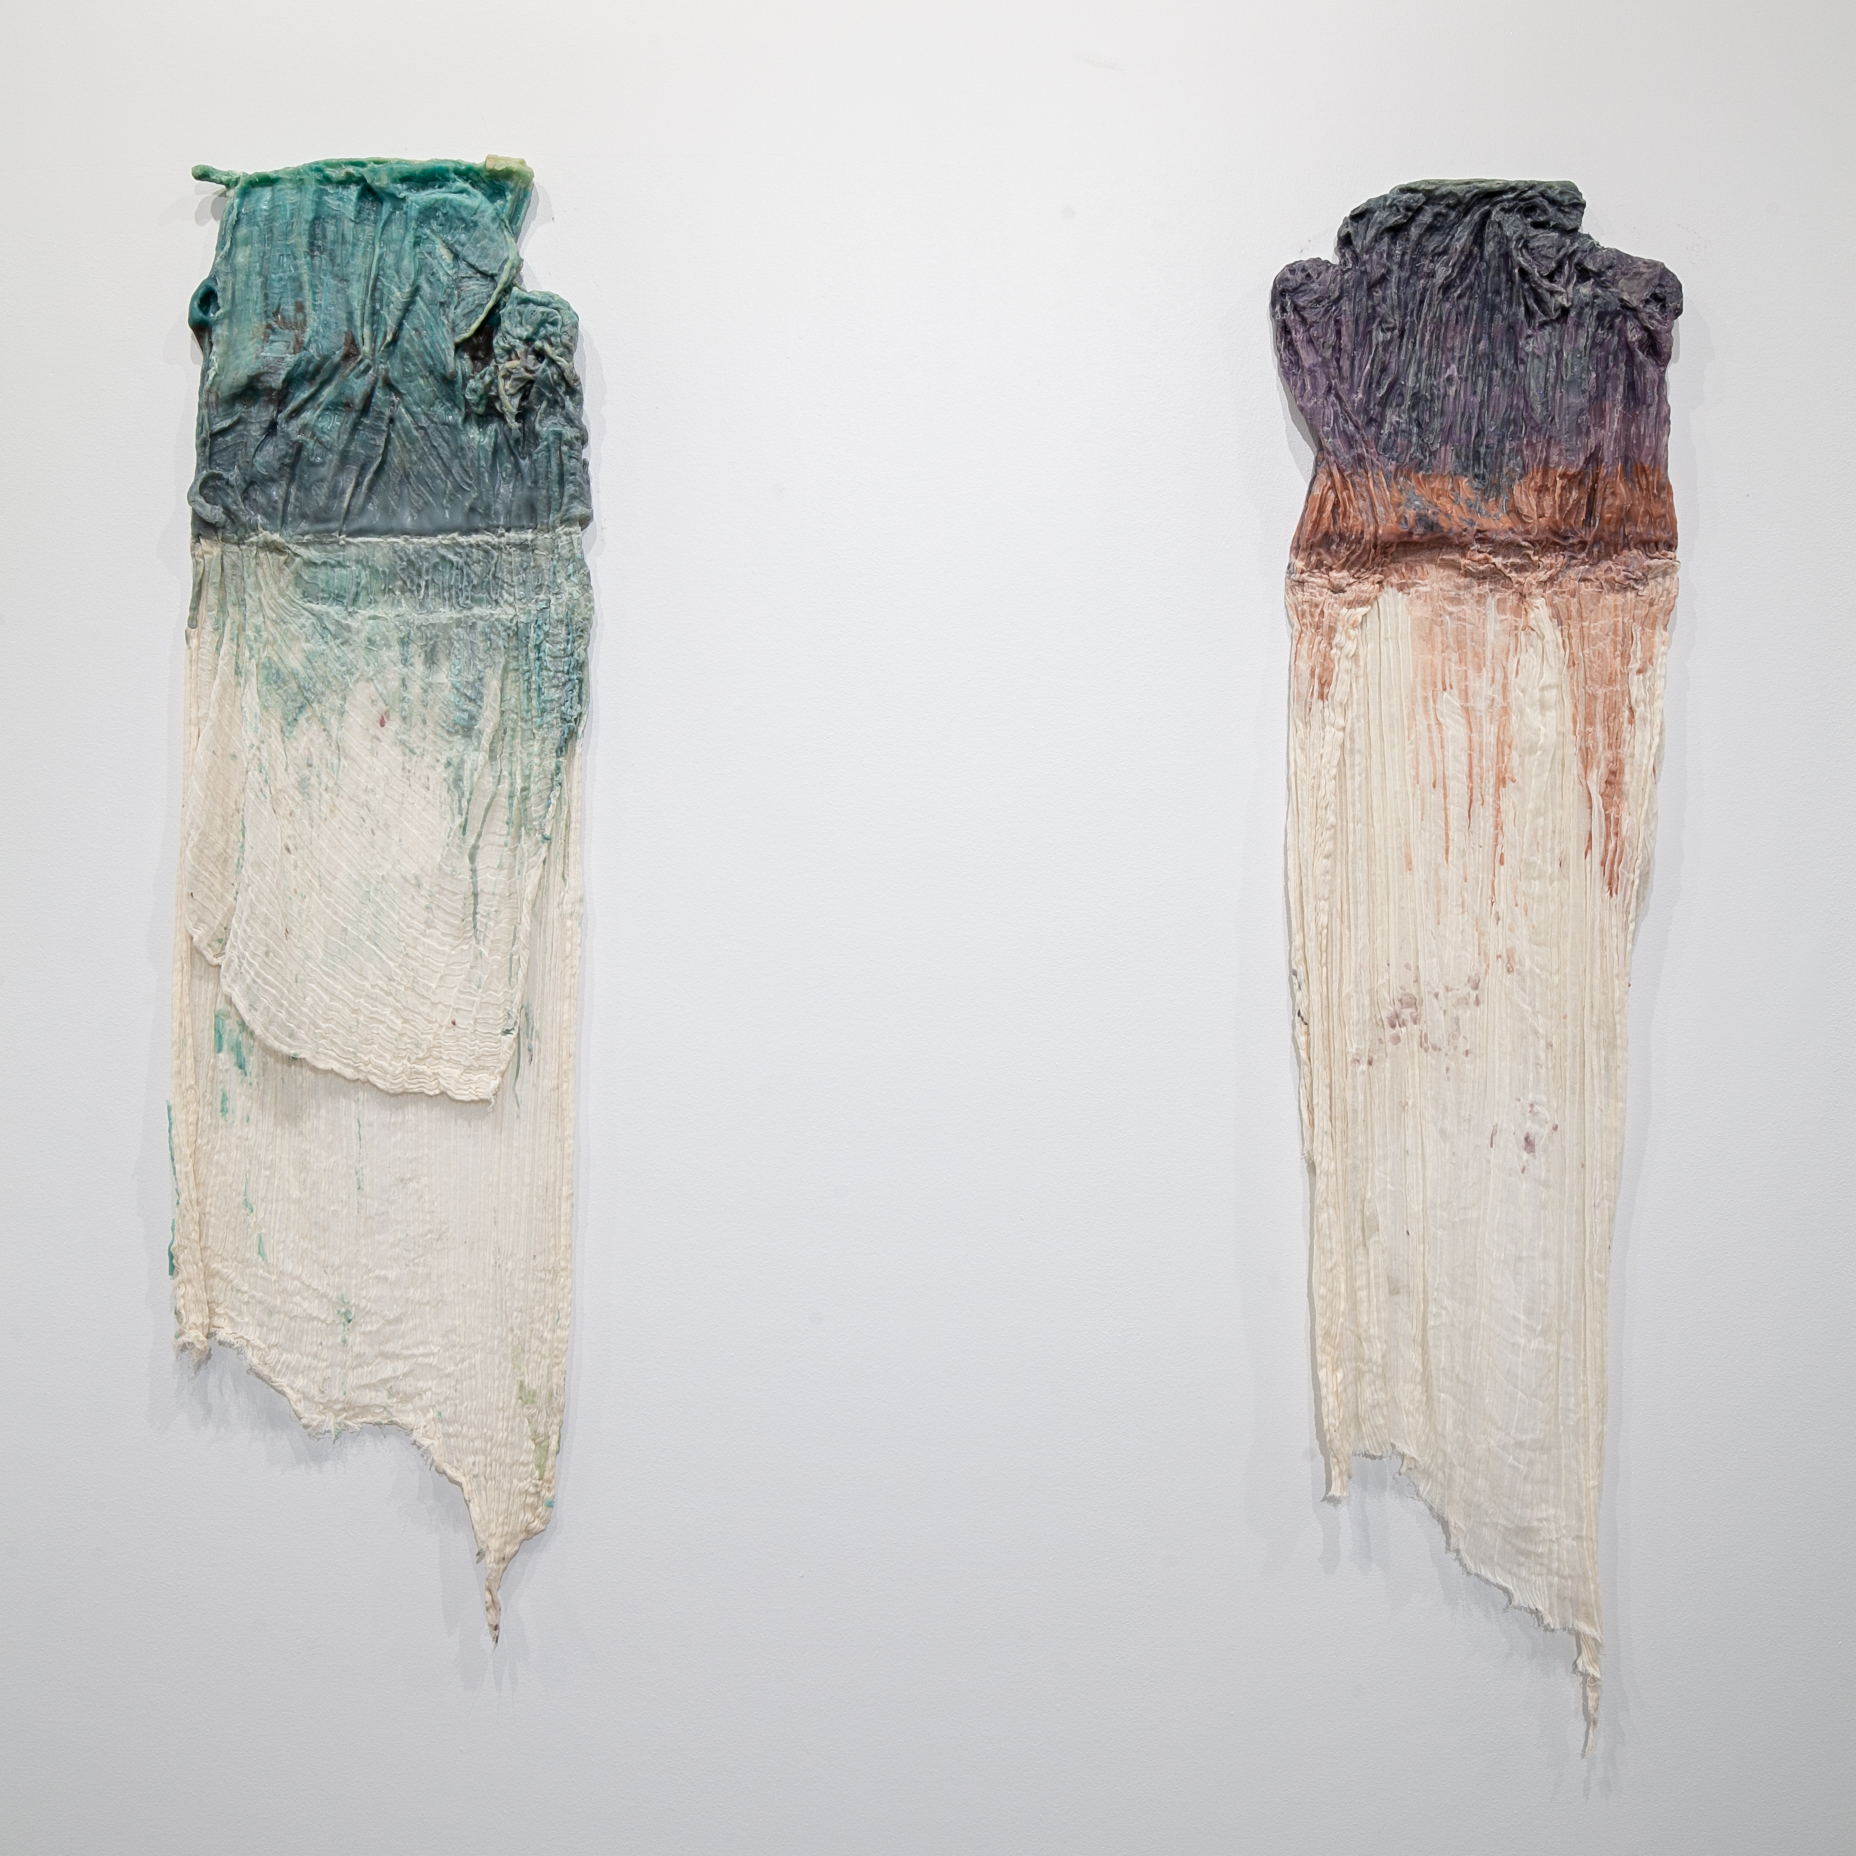 "Lacy Mitcham Veteto (Memphis, TN)   Soft Skeleton  (Diptych), 2018  Medium: Cheesecloth and wax  Dimensions: 63x30 inches each    "" Soft Skeleton  was made through a process of casting and carving wax to expose the internal structure of undulating fabric suspended in the wax. I started using wax because of its flexibility and the way it layers, which I associate with the layering that make up the body.""  – Lacy Mitcham Veteto"